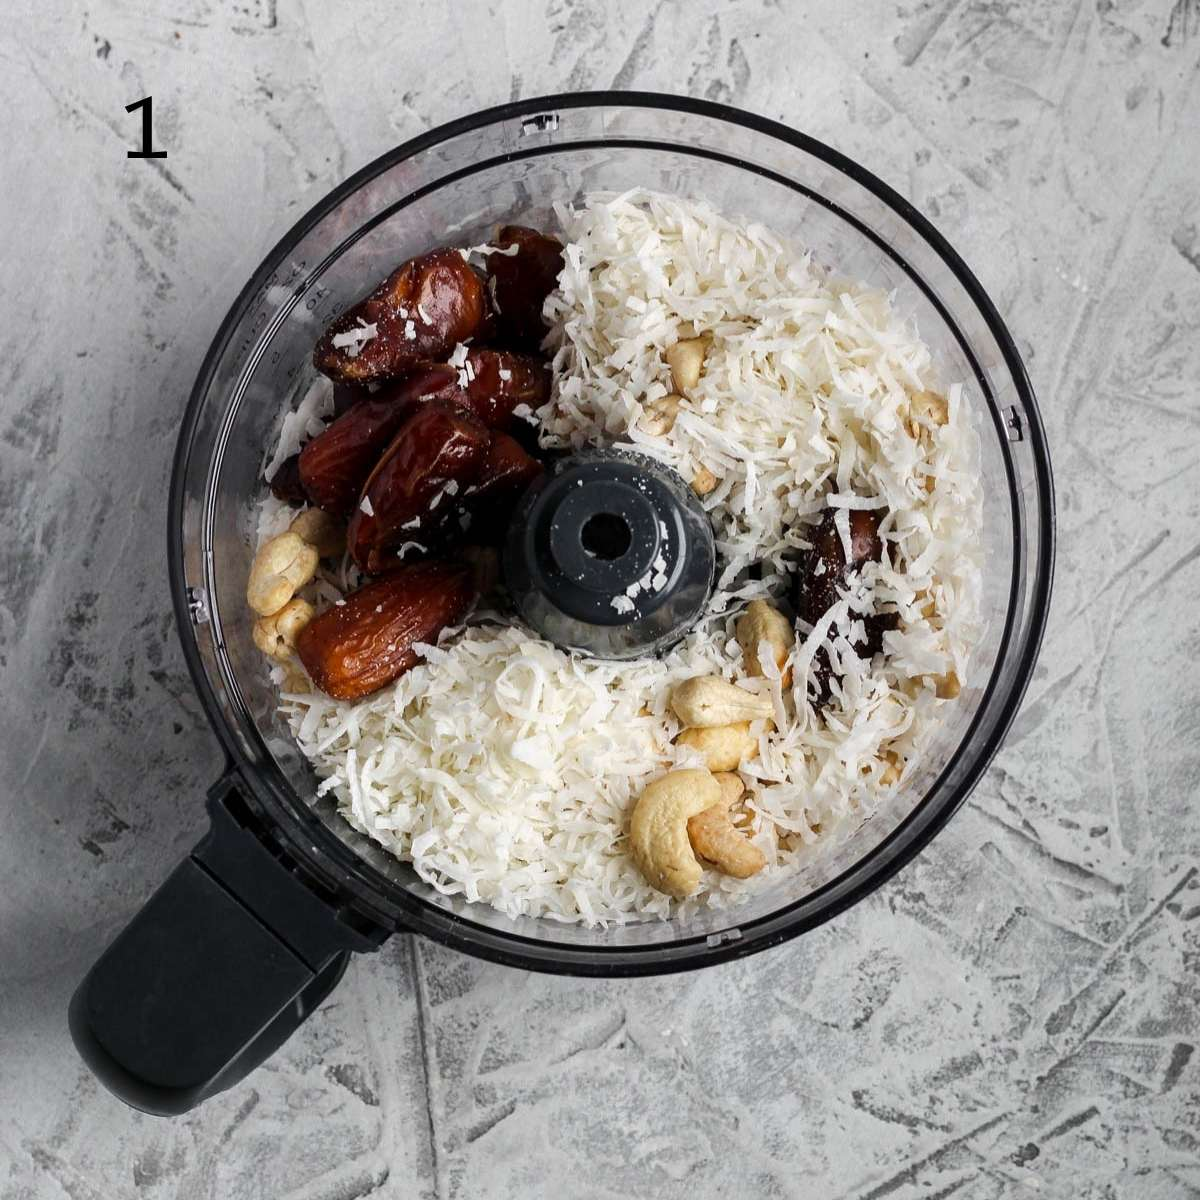 a food processor filled with pitted dates, shredded coconut, cashews, almonds, and coconut oil